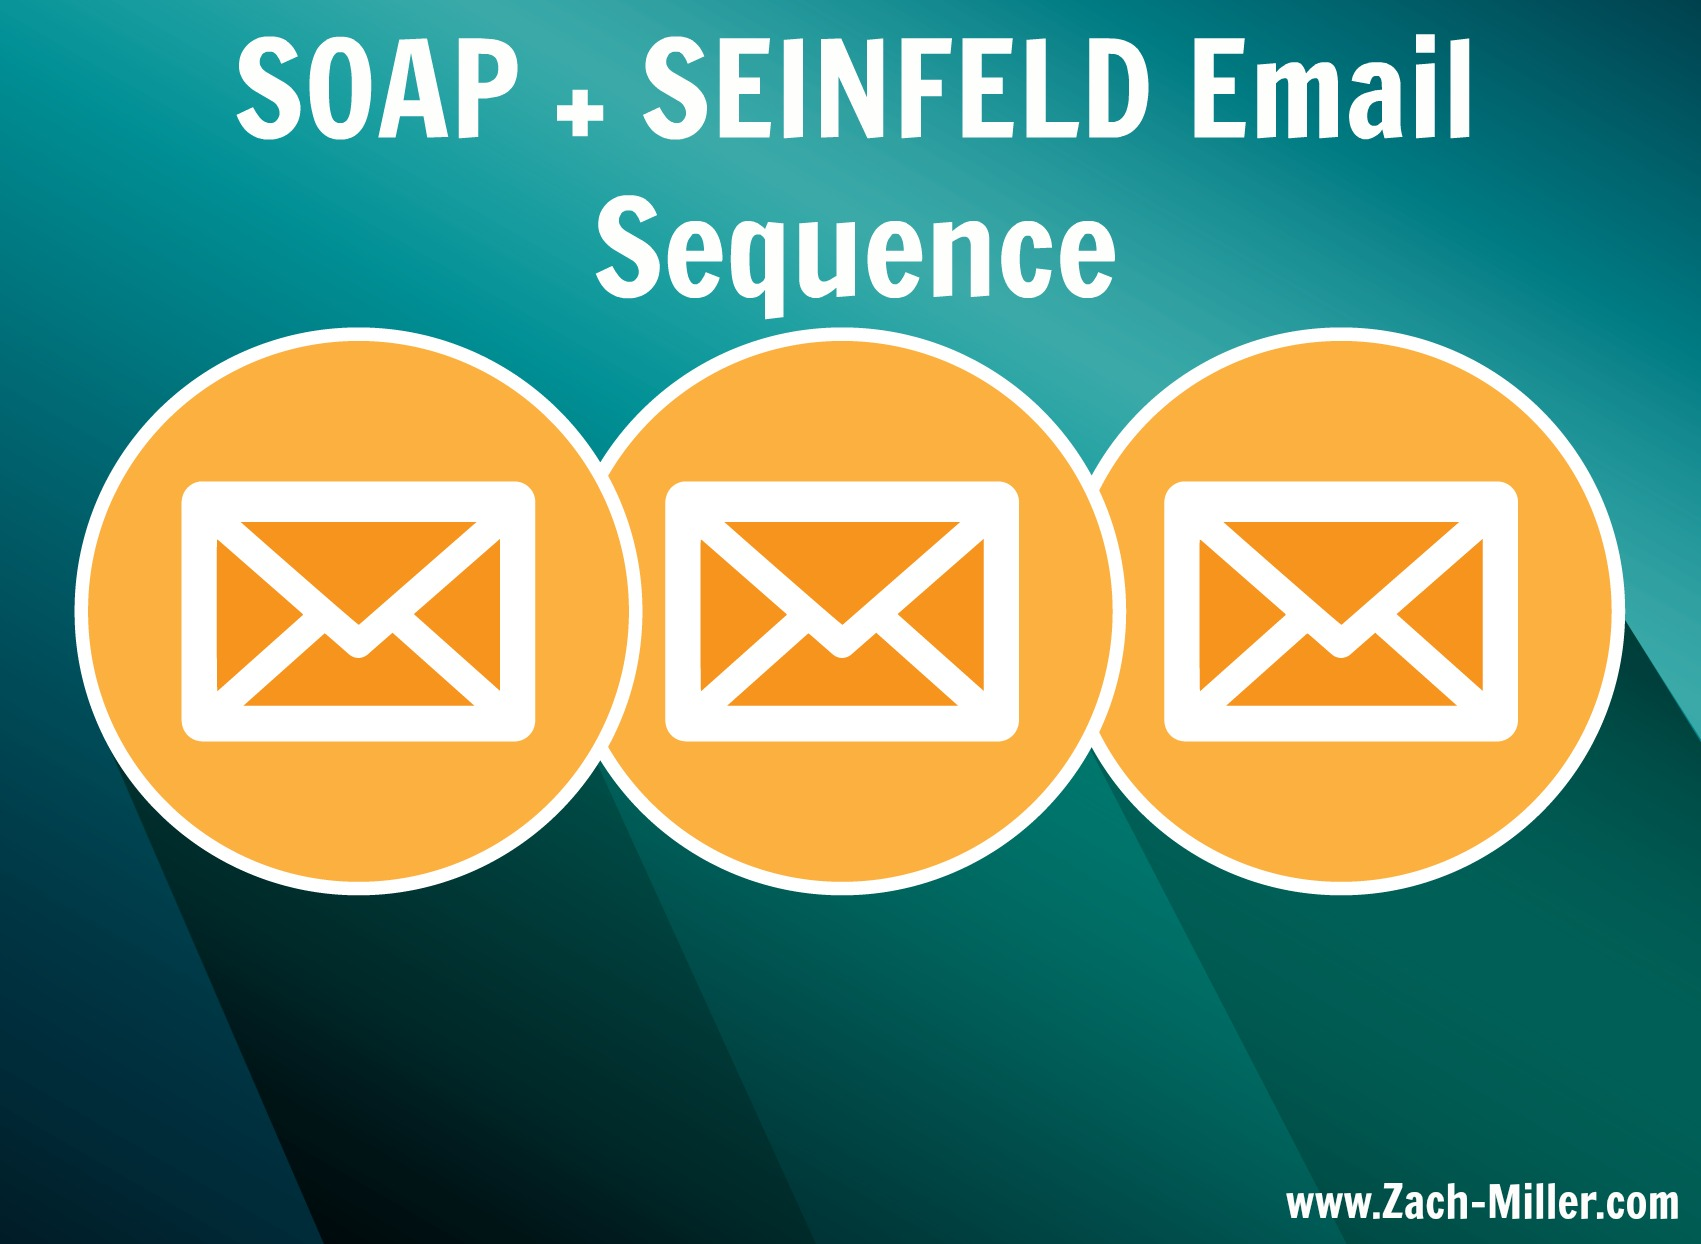 SOAP SEINFELD Email Sequence